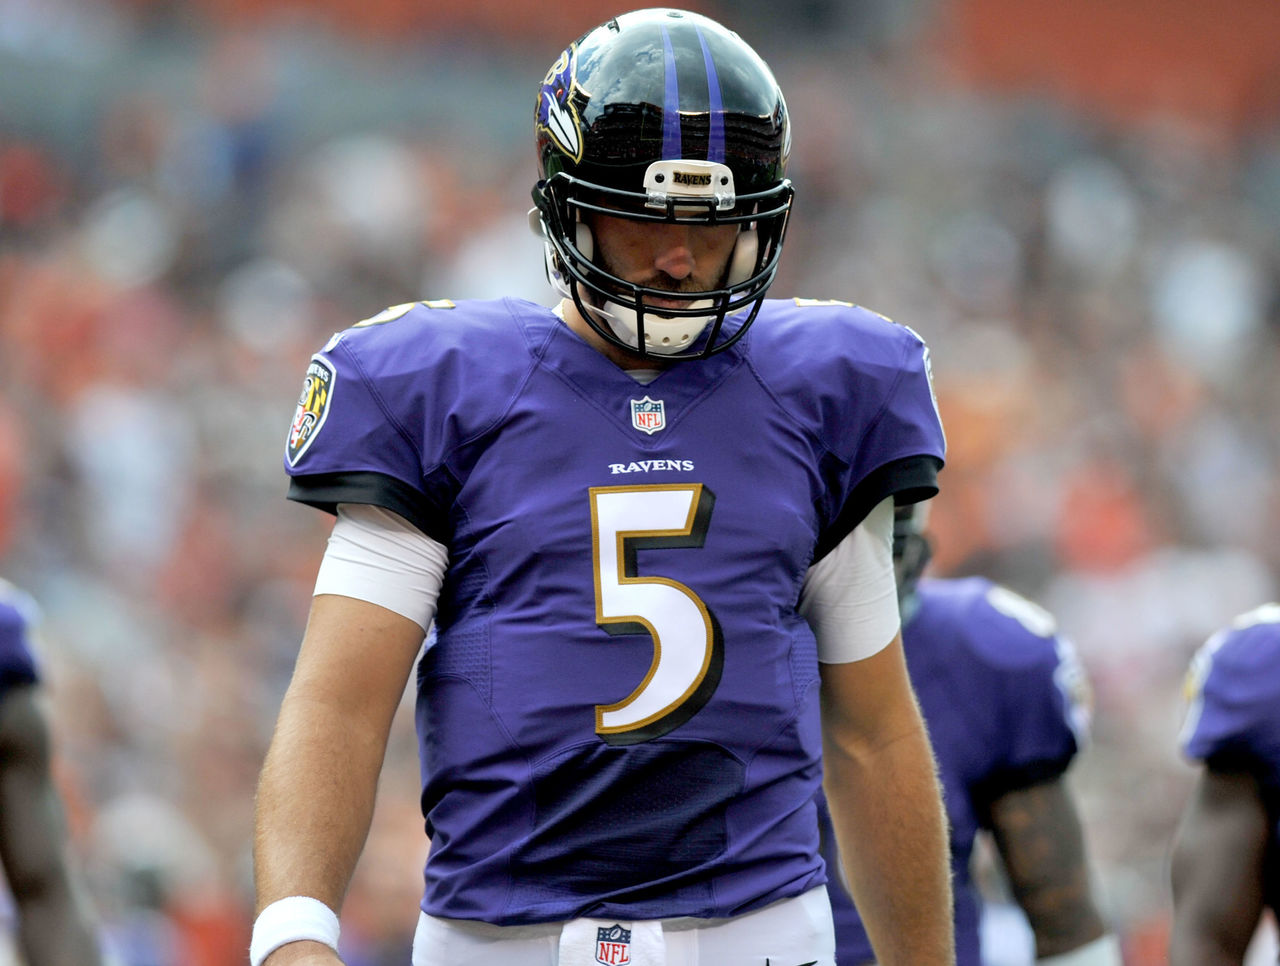 Report: Ravens' Flacco preparing to miss 3-6 weeks with back issue